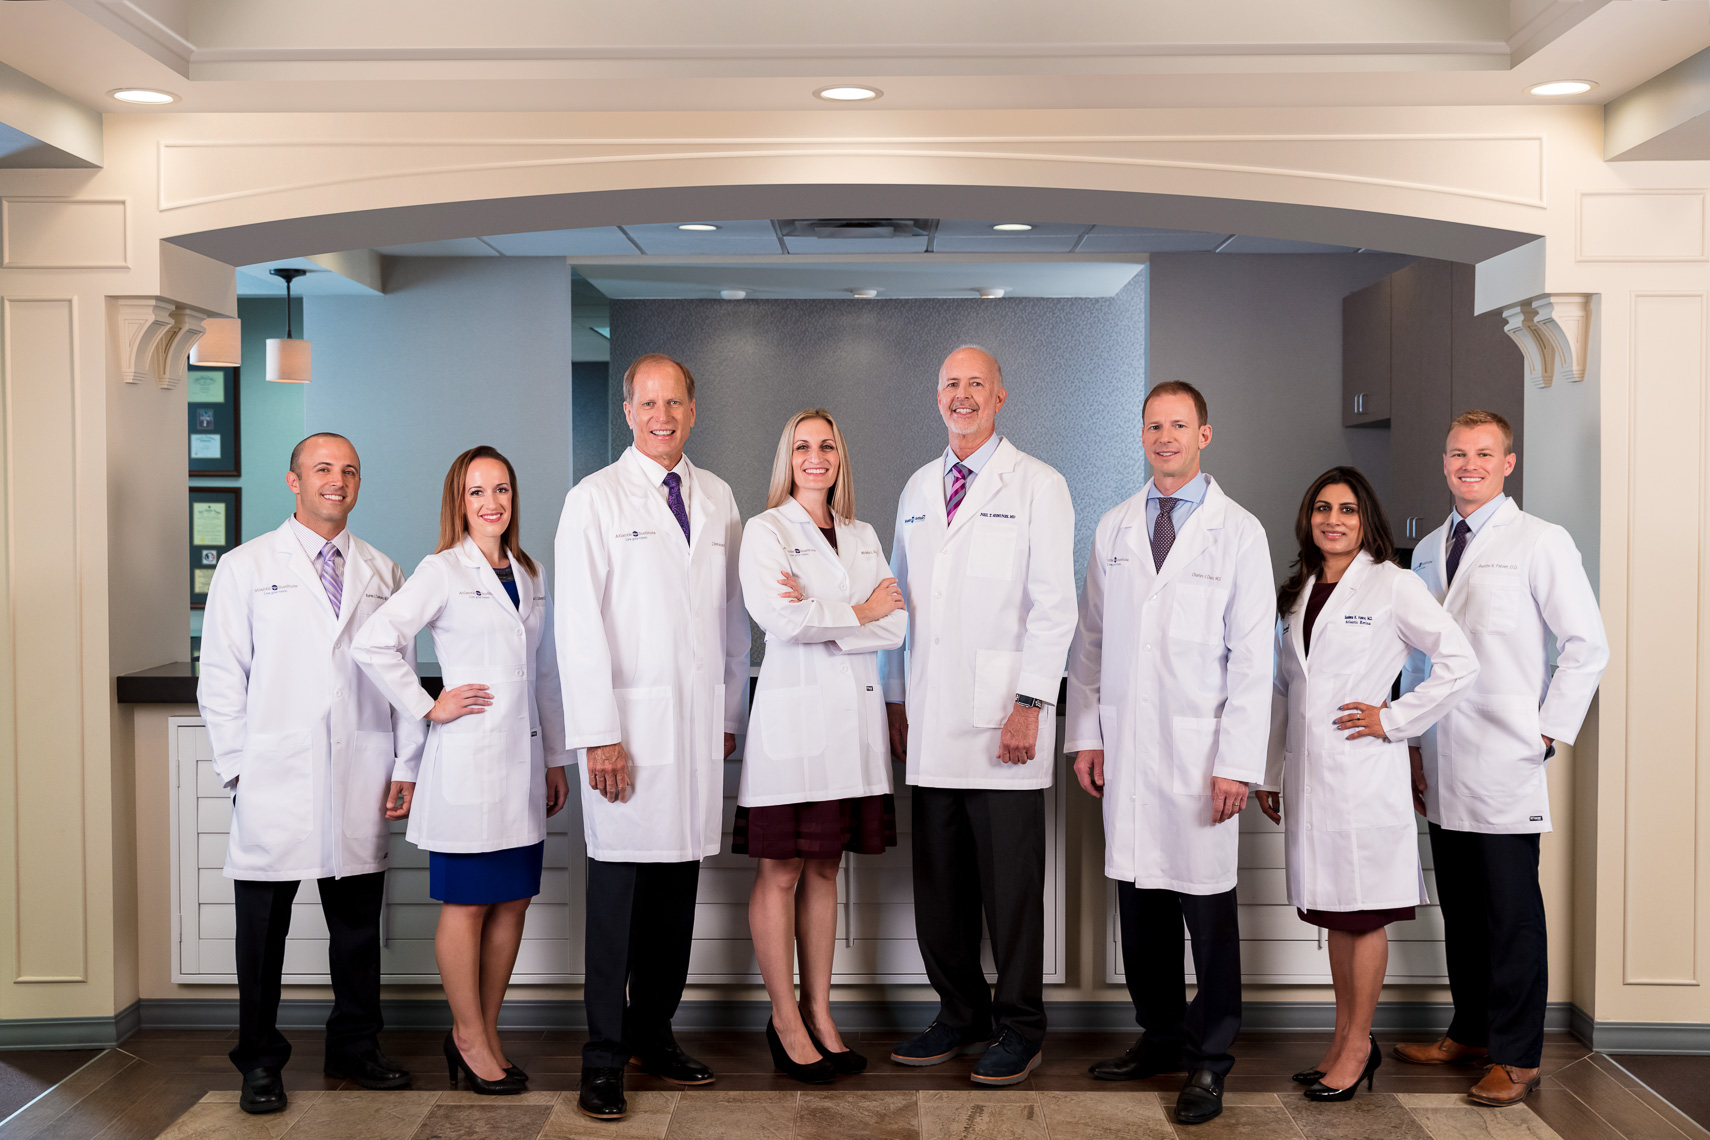 Group portrait of eye doctors